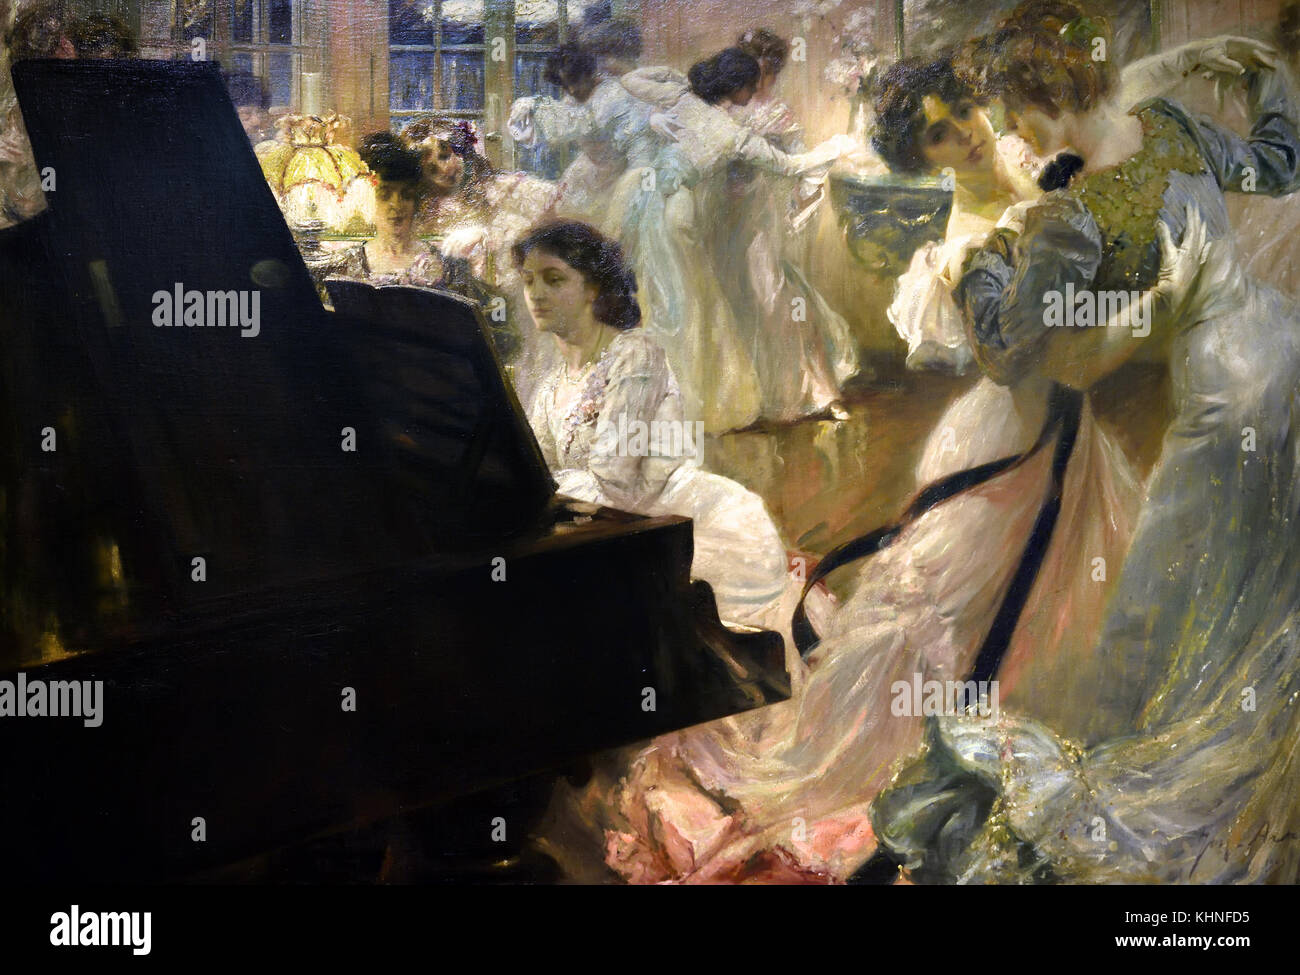 The White Ball 1903 Joseph-Marius Avy 1871-1939  France, French. ( The Erard piano with the Movements of the dancers, - Stock Image